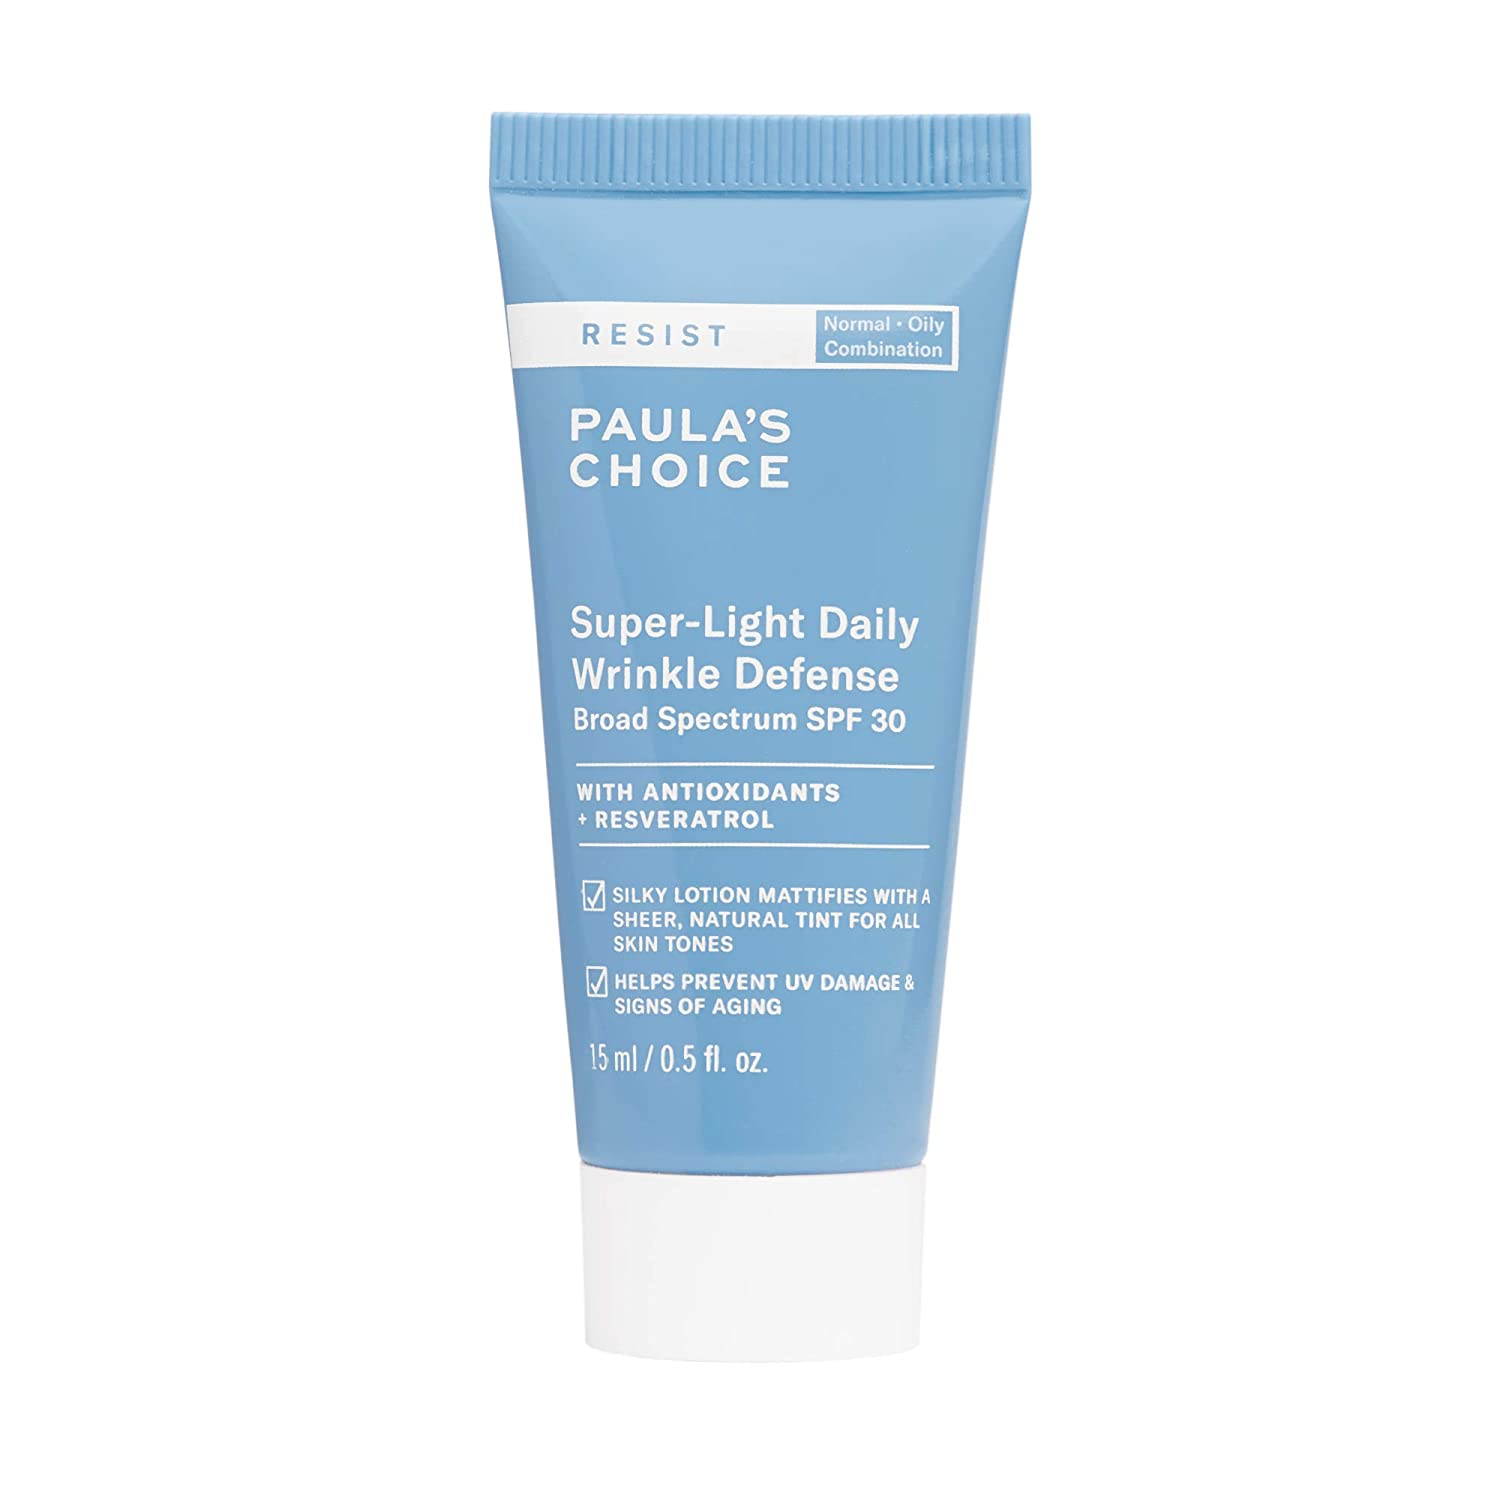 Paula's Choice RESIST Super-Light Daily Wrinkle Defense SPF 30 Matte Tinted Face Moisturizer with UVA & UVB Protection, Anti-Aging Sunscreen for Oily Skin, Travel Size